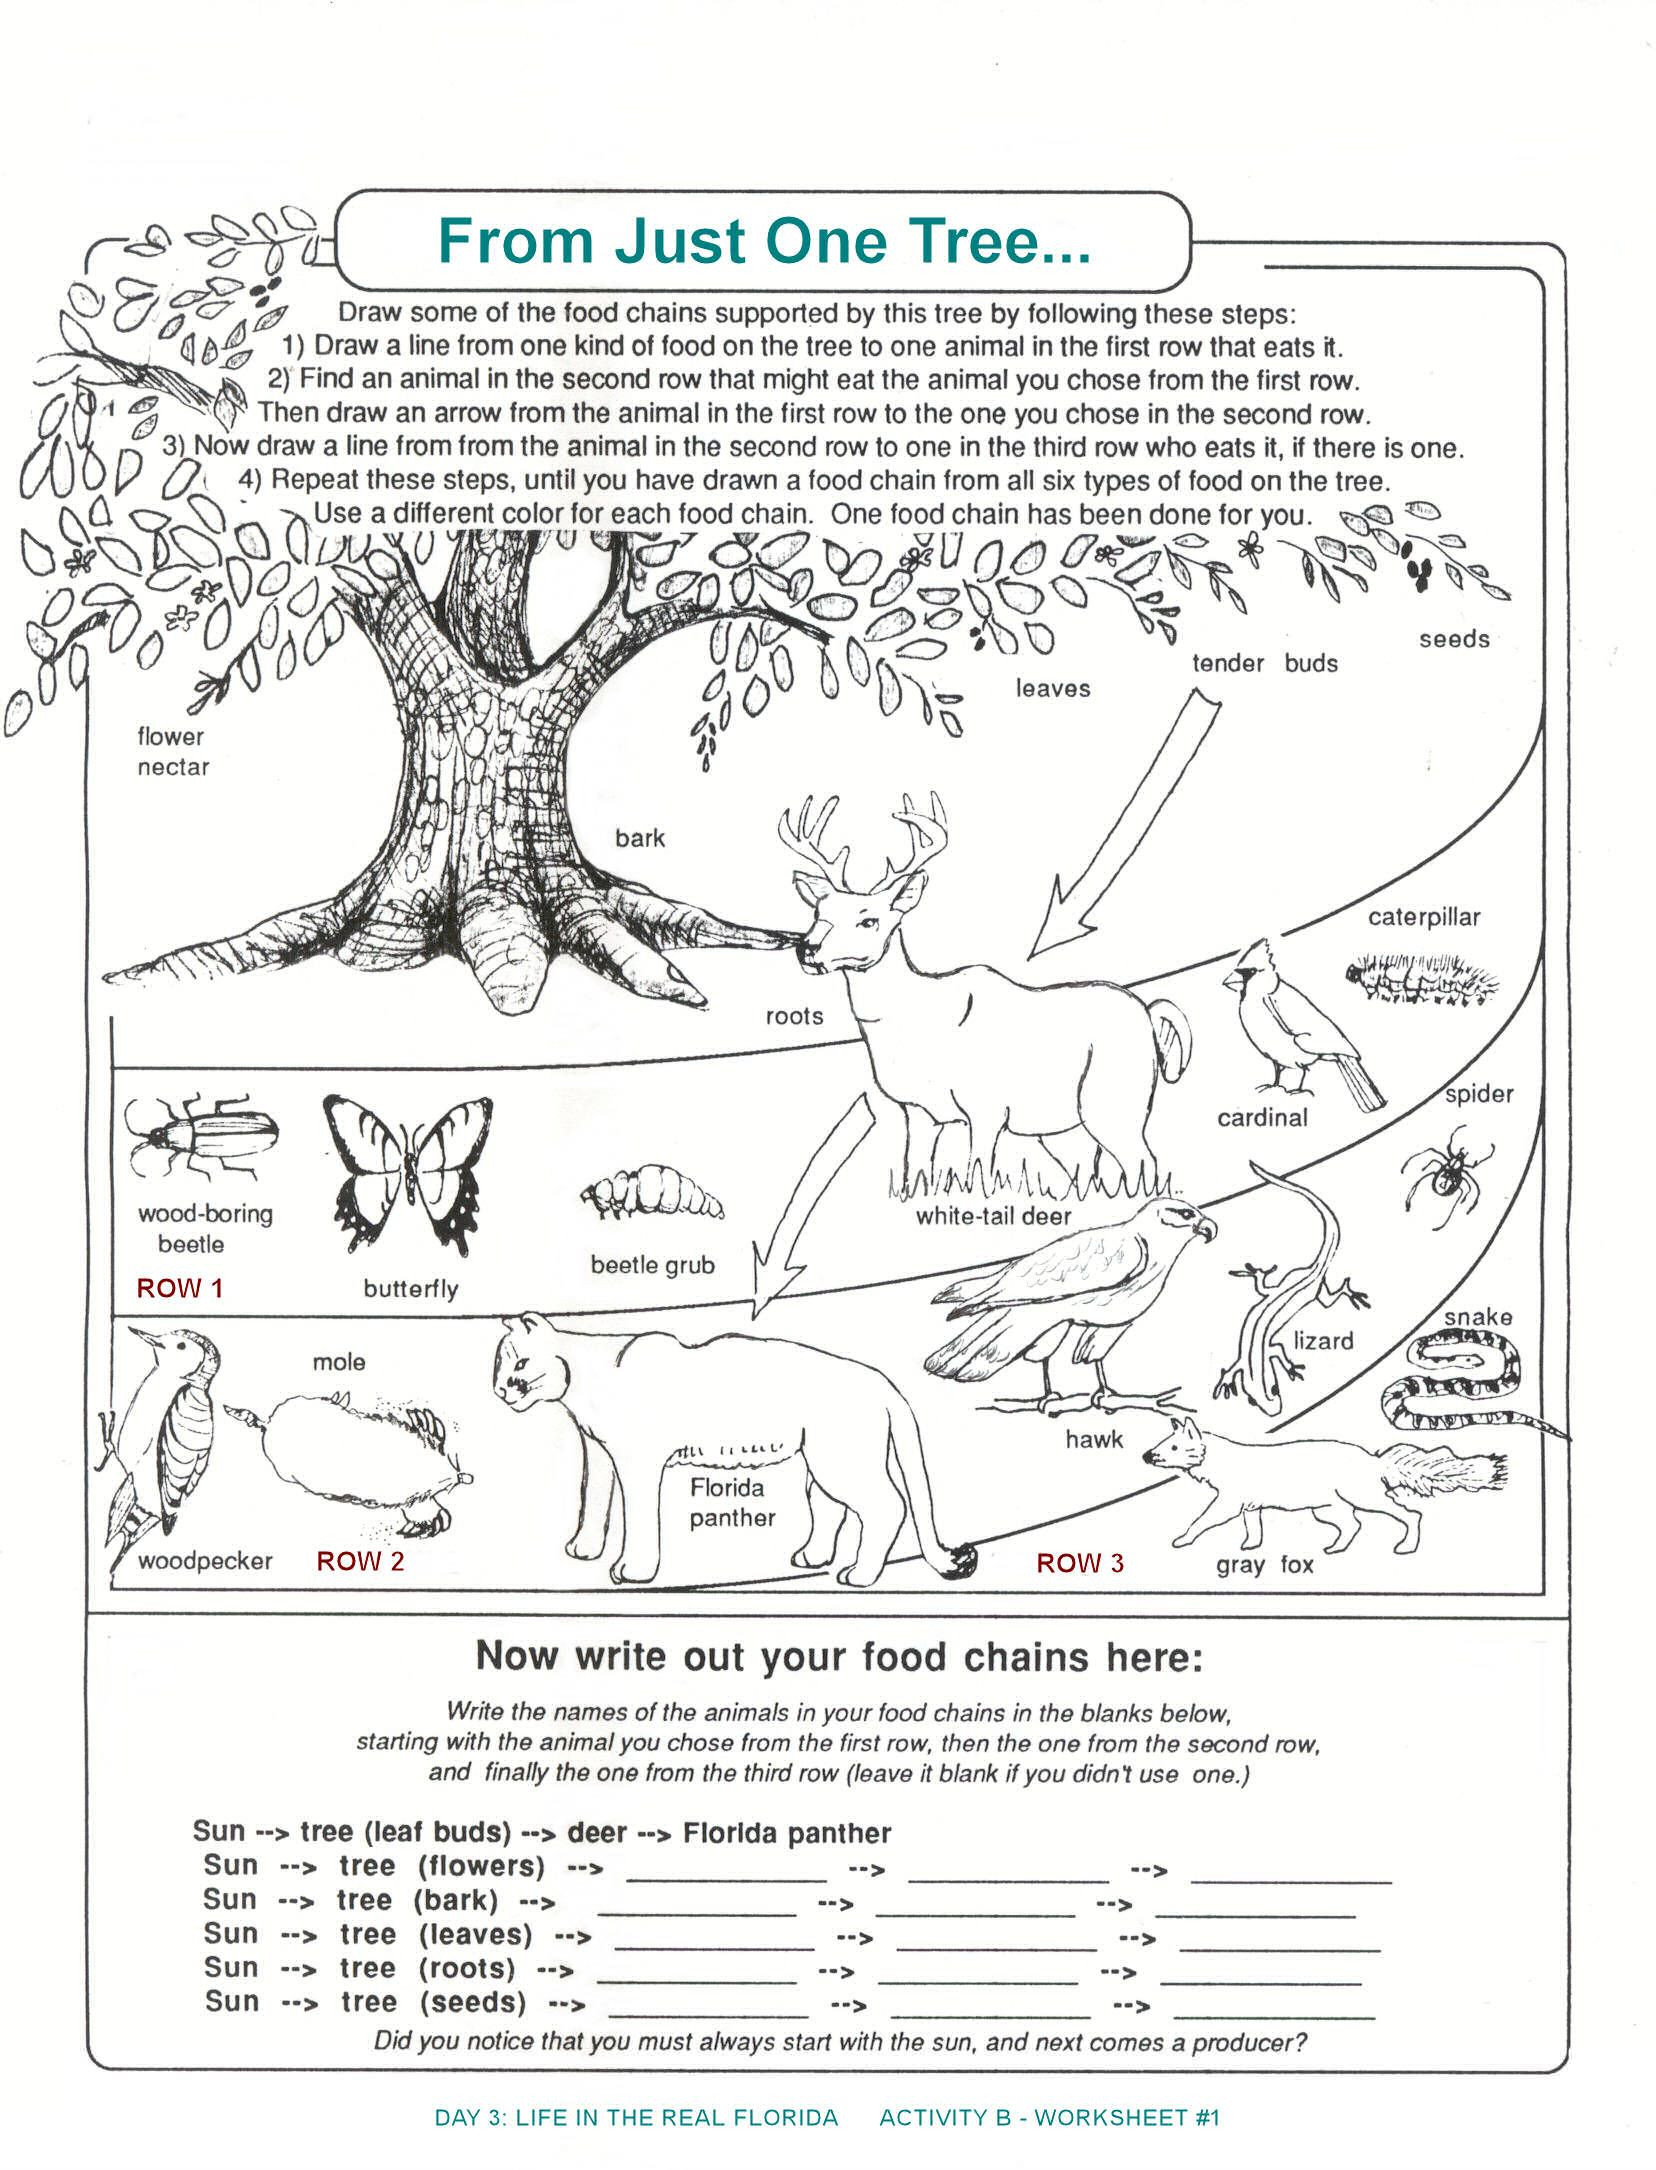 Ecology Review Worksheet 1 Florida Food Chain Worksheet From Just One Tree